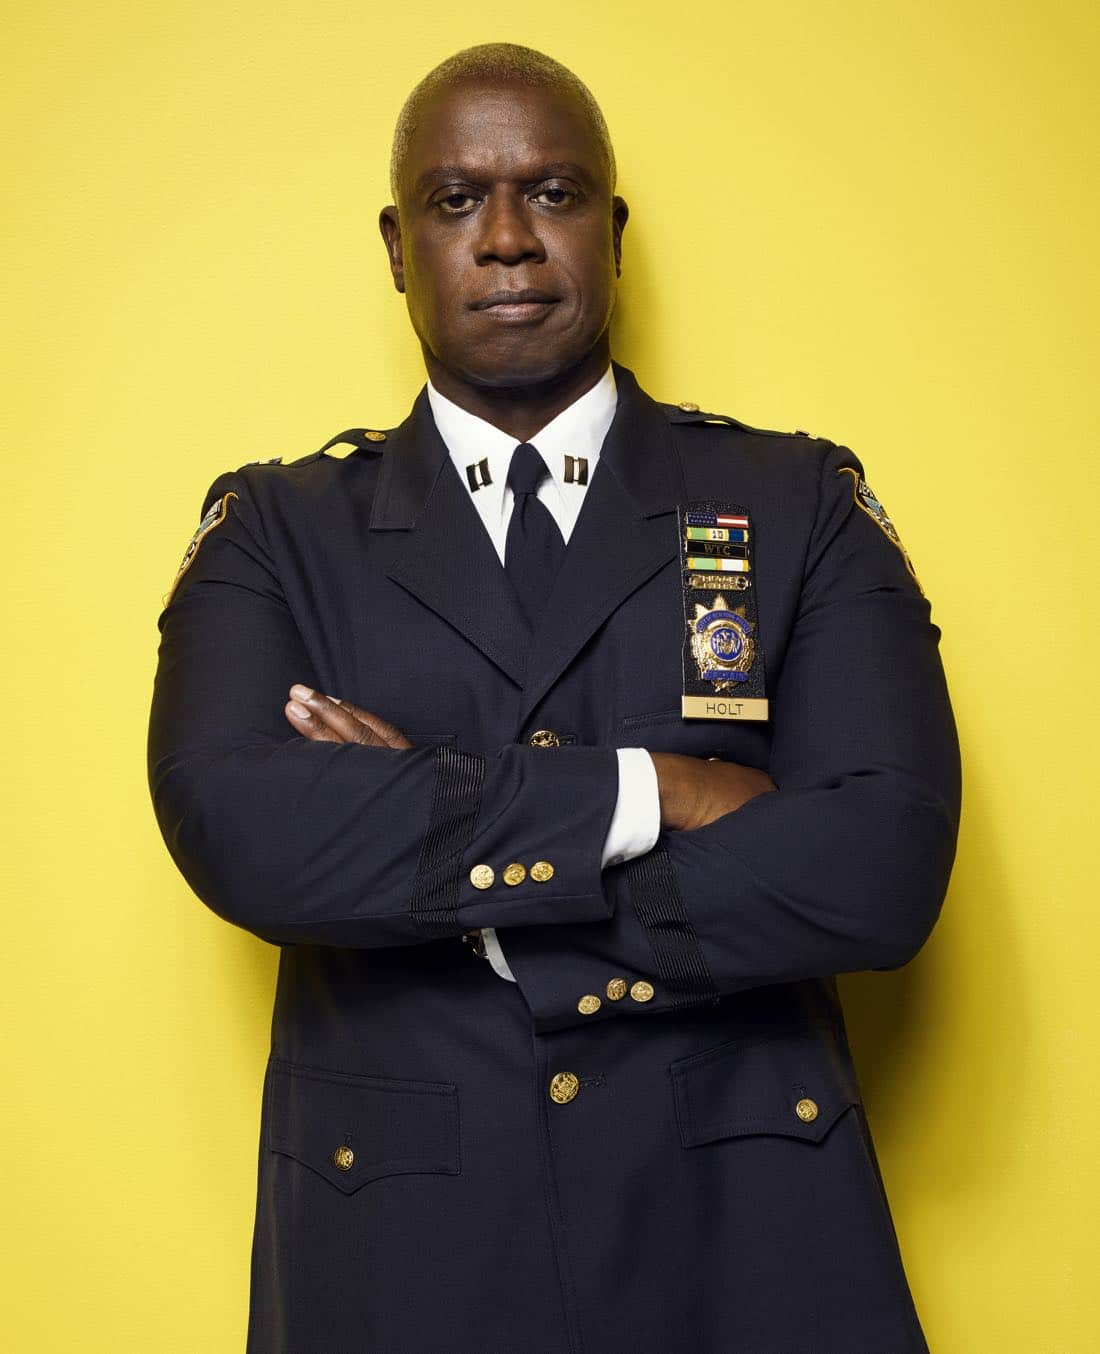 BROOKLYN NINE-NINE: Andre Braugher as Captain Ray Holt. BROOKLYN NINE-NINE Season Five premieres Tuesday, Sept. 26 (9:30-10:00 PM ET/PT) on FOX. ©2017 Fox Broadcasting Co. CR: Robert Trachtenberg/FOX